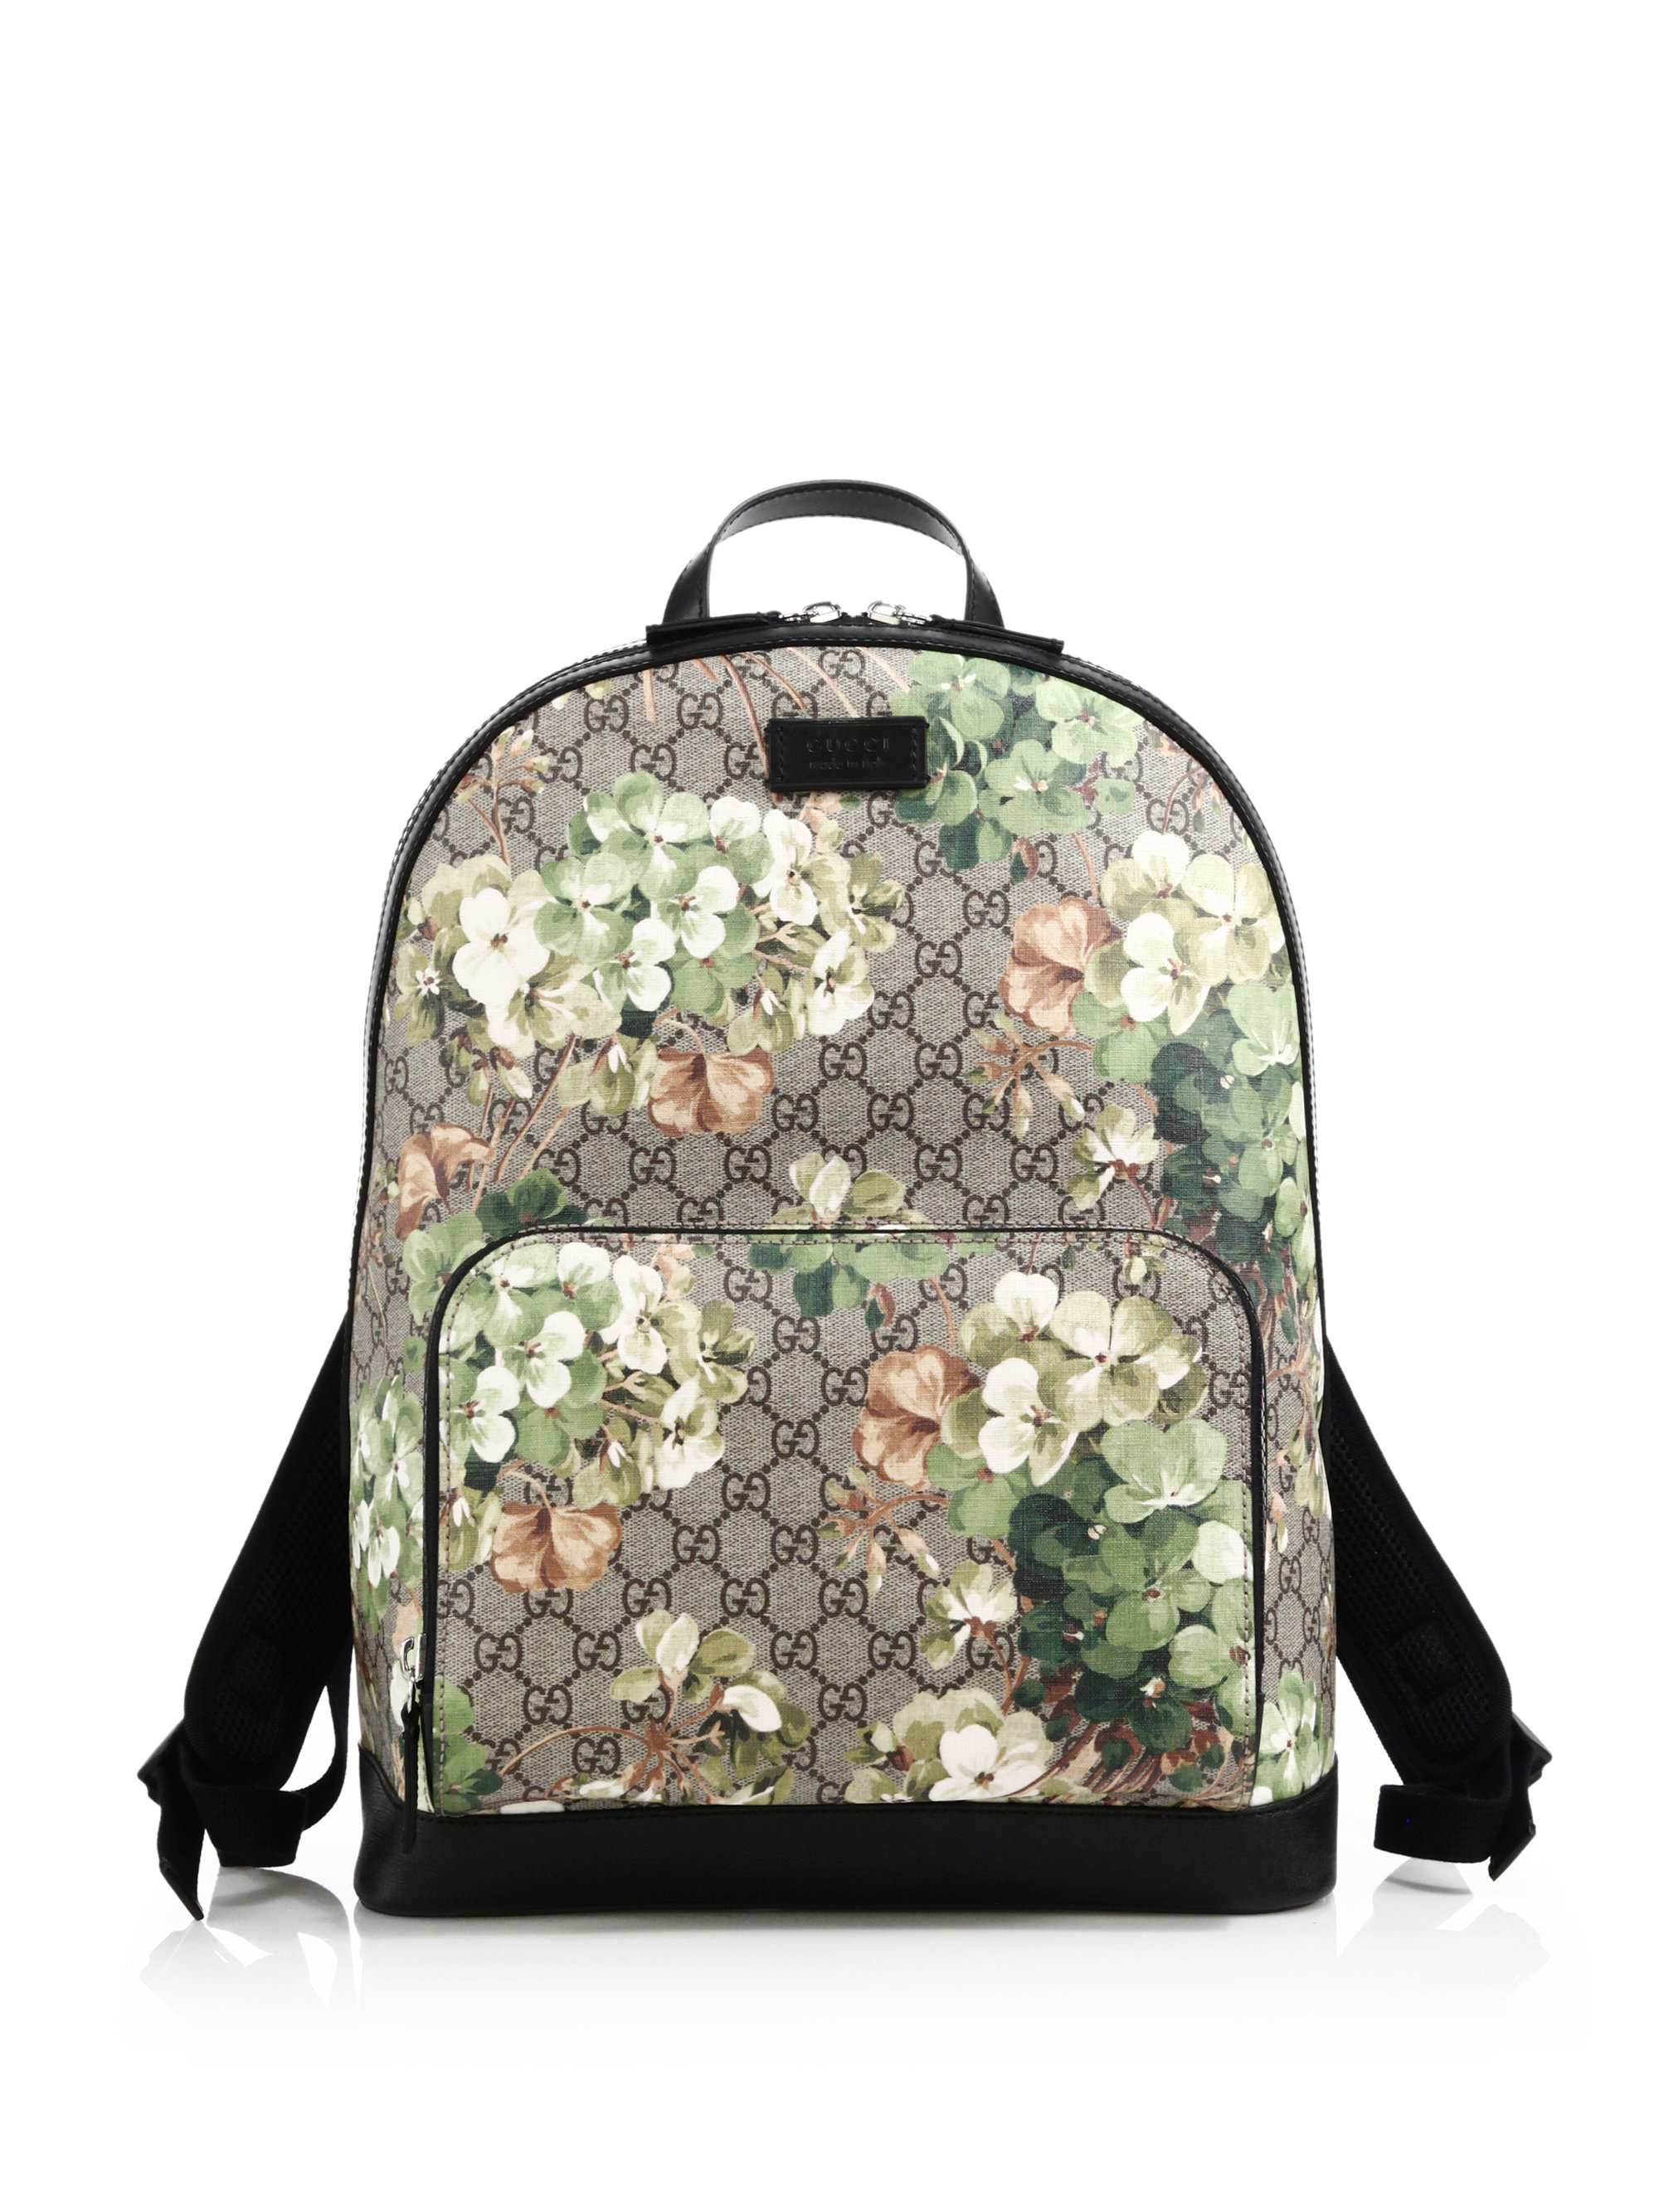 c826d47f2 bahrainpavilion2015 - Guide gucci blooms gg supreme backpack